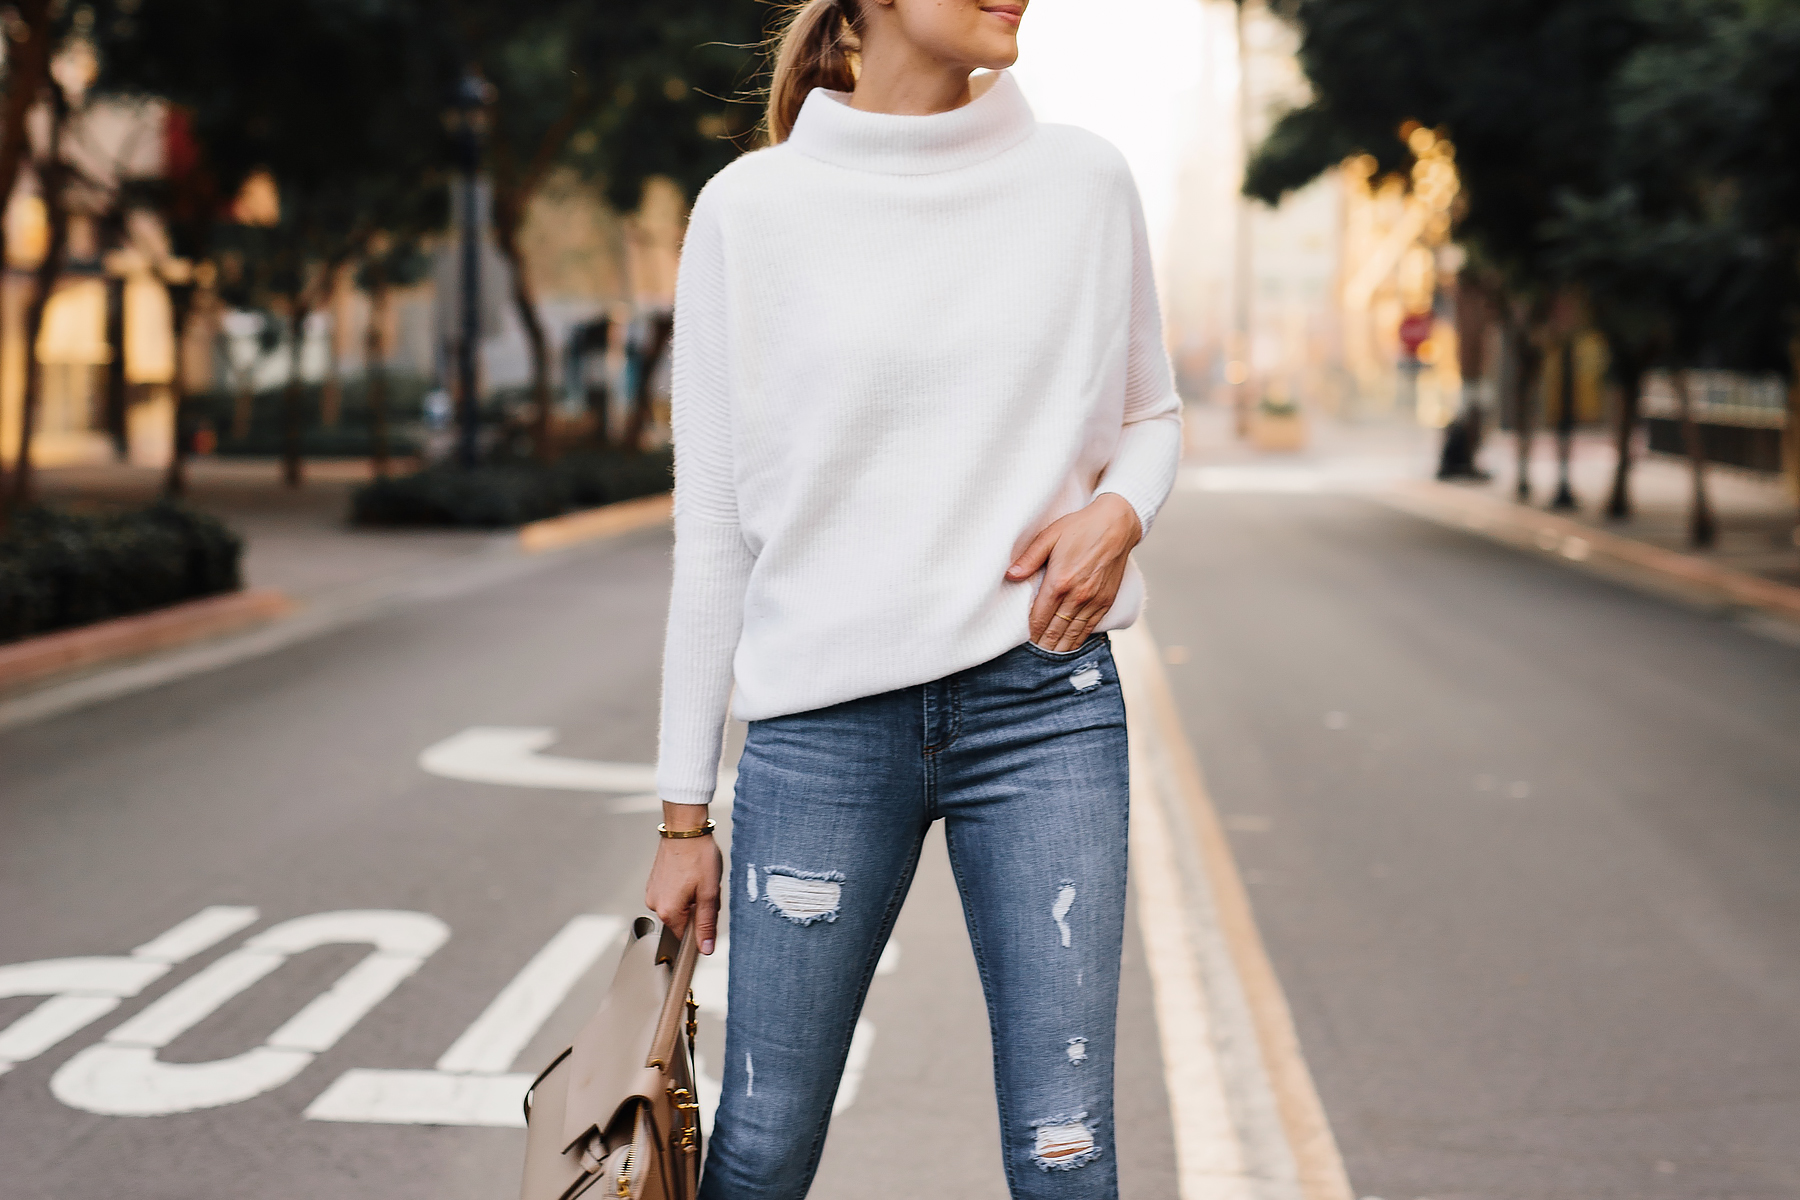 Woman Wearing Walmart White Mock Neck Sweater Denim Ripped Skinny Jeans Outfit Fashion Jackson San Diego Fashion Blogger Street Style